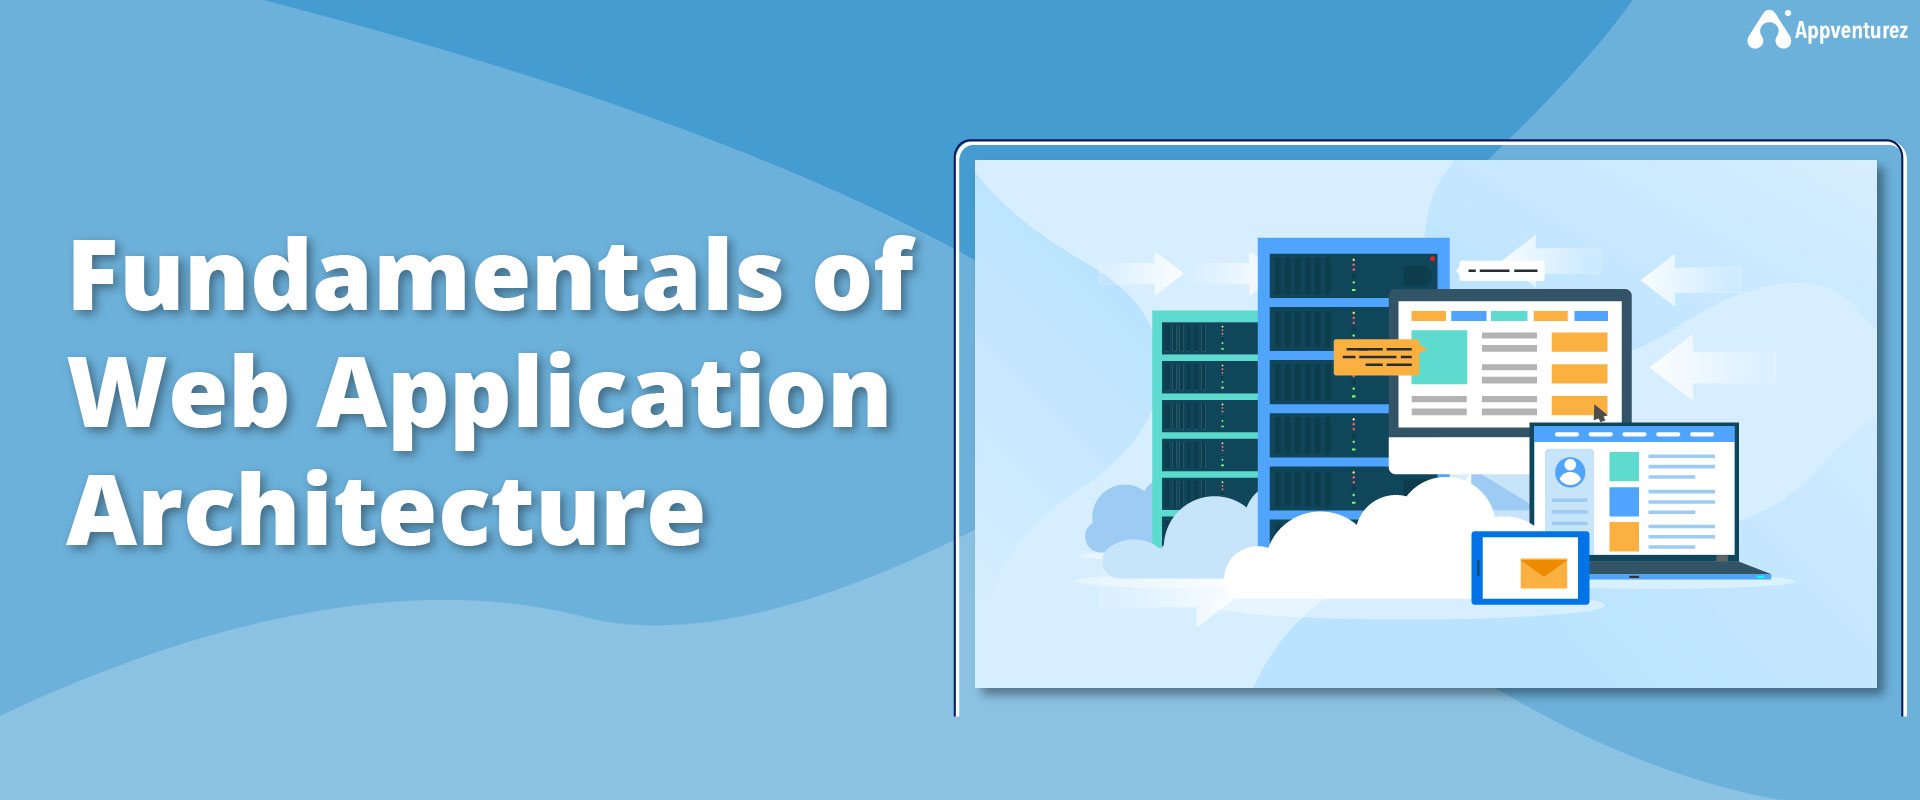 Want to Know About Fundamentals of web application architecture? Let Us Help You